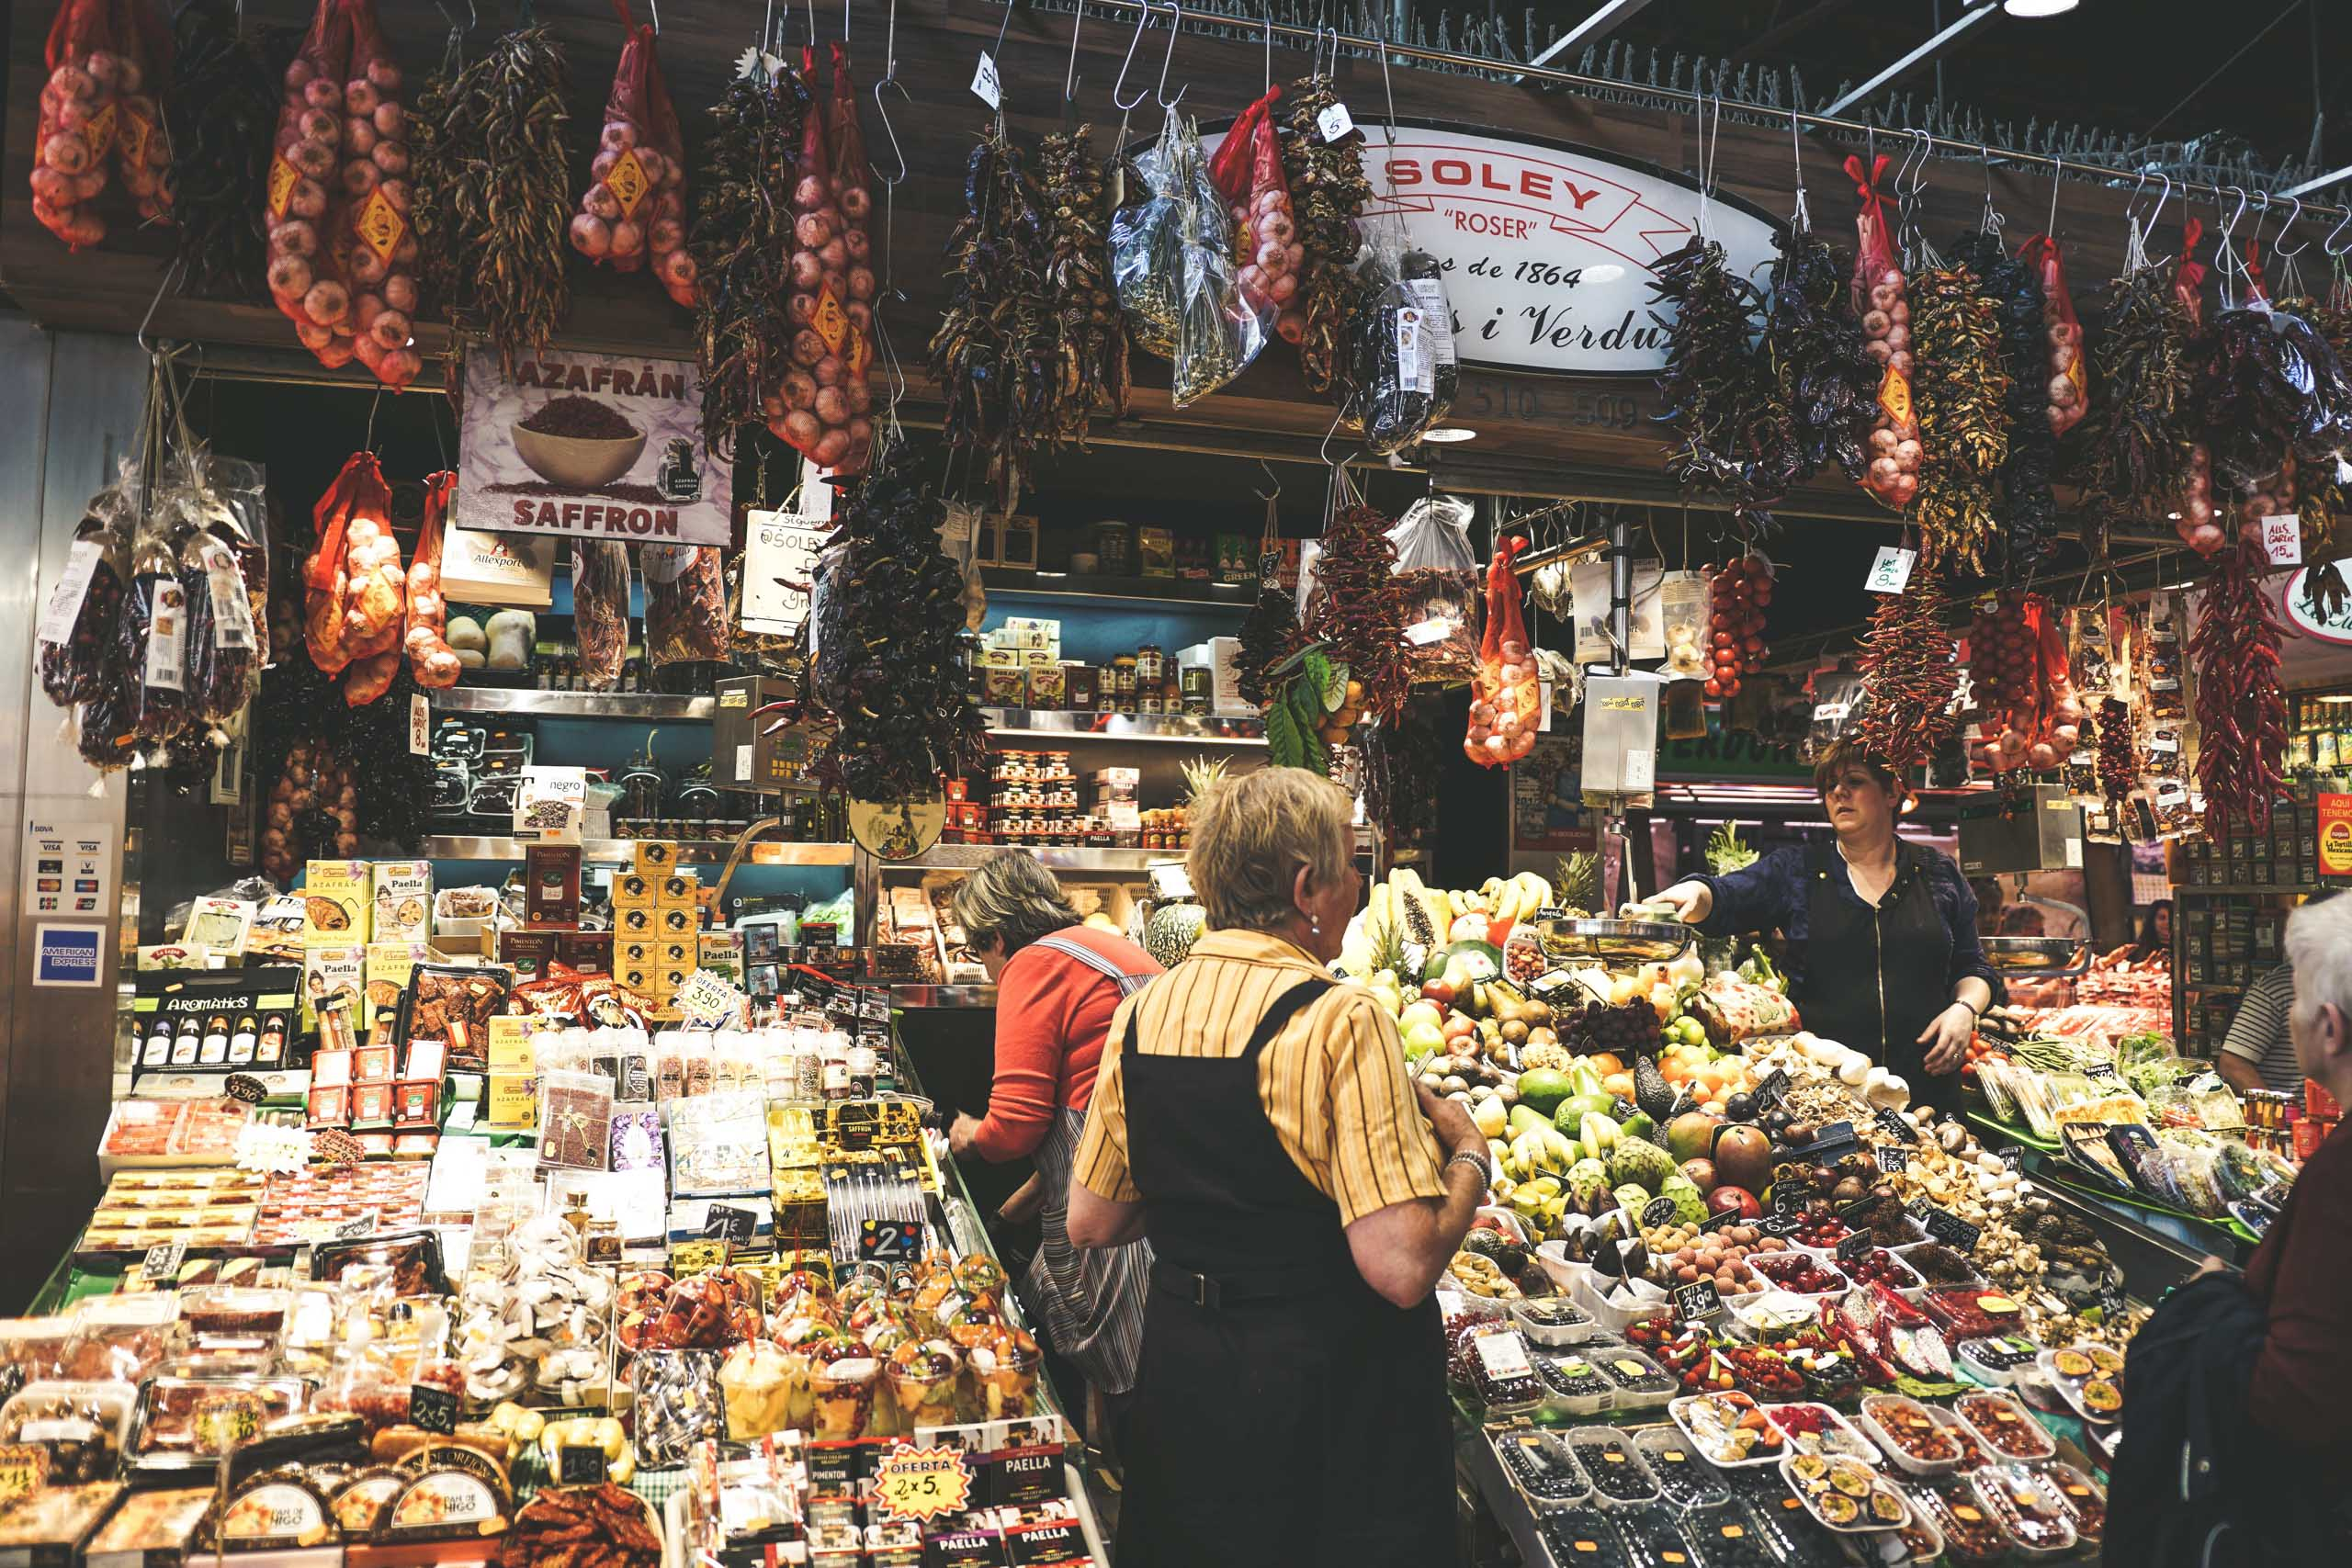 Market stall in Barcelona. Photo by Jessica To'oto'o on Unsplash